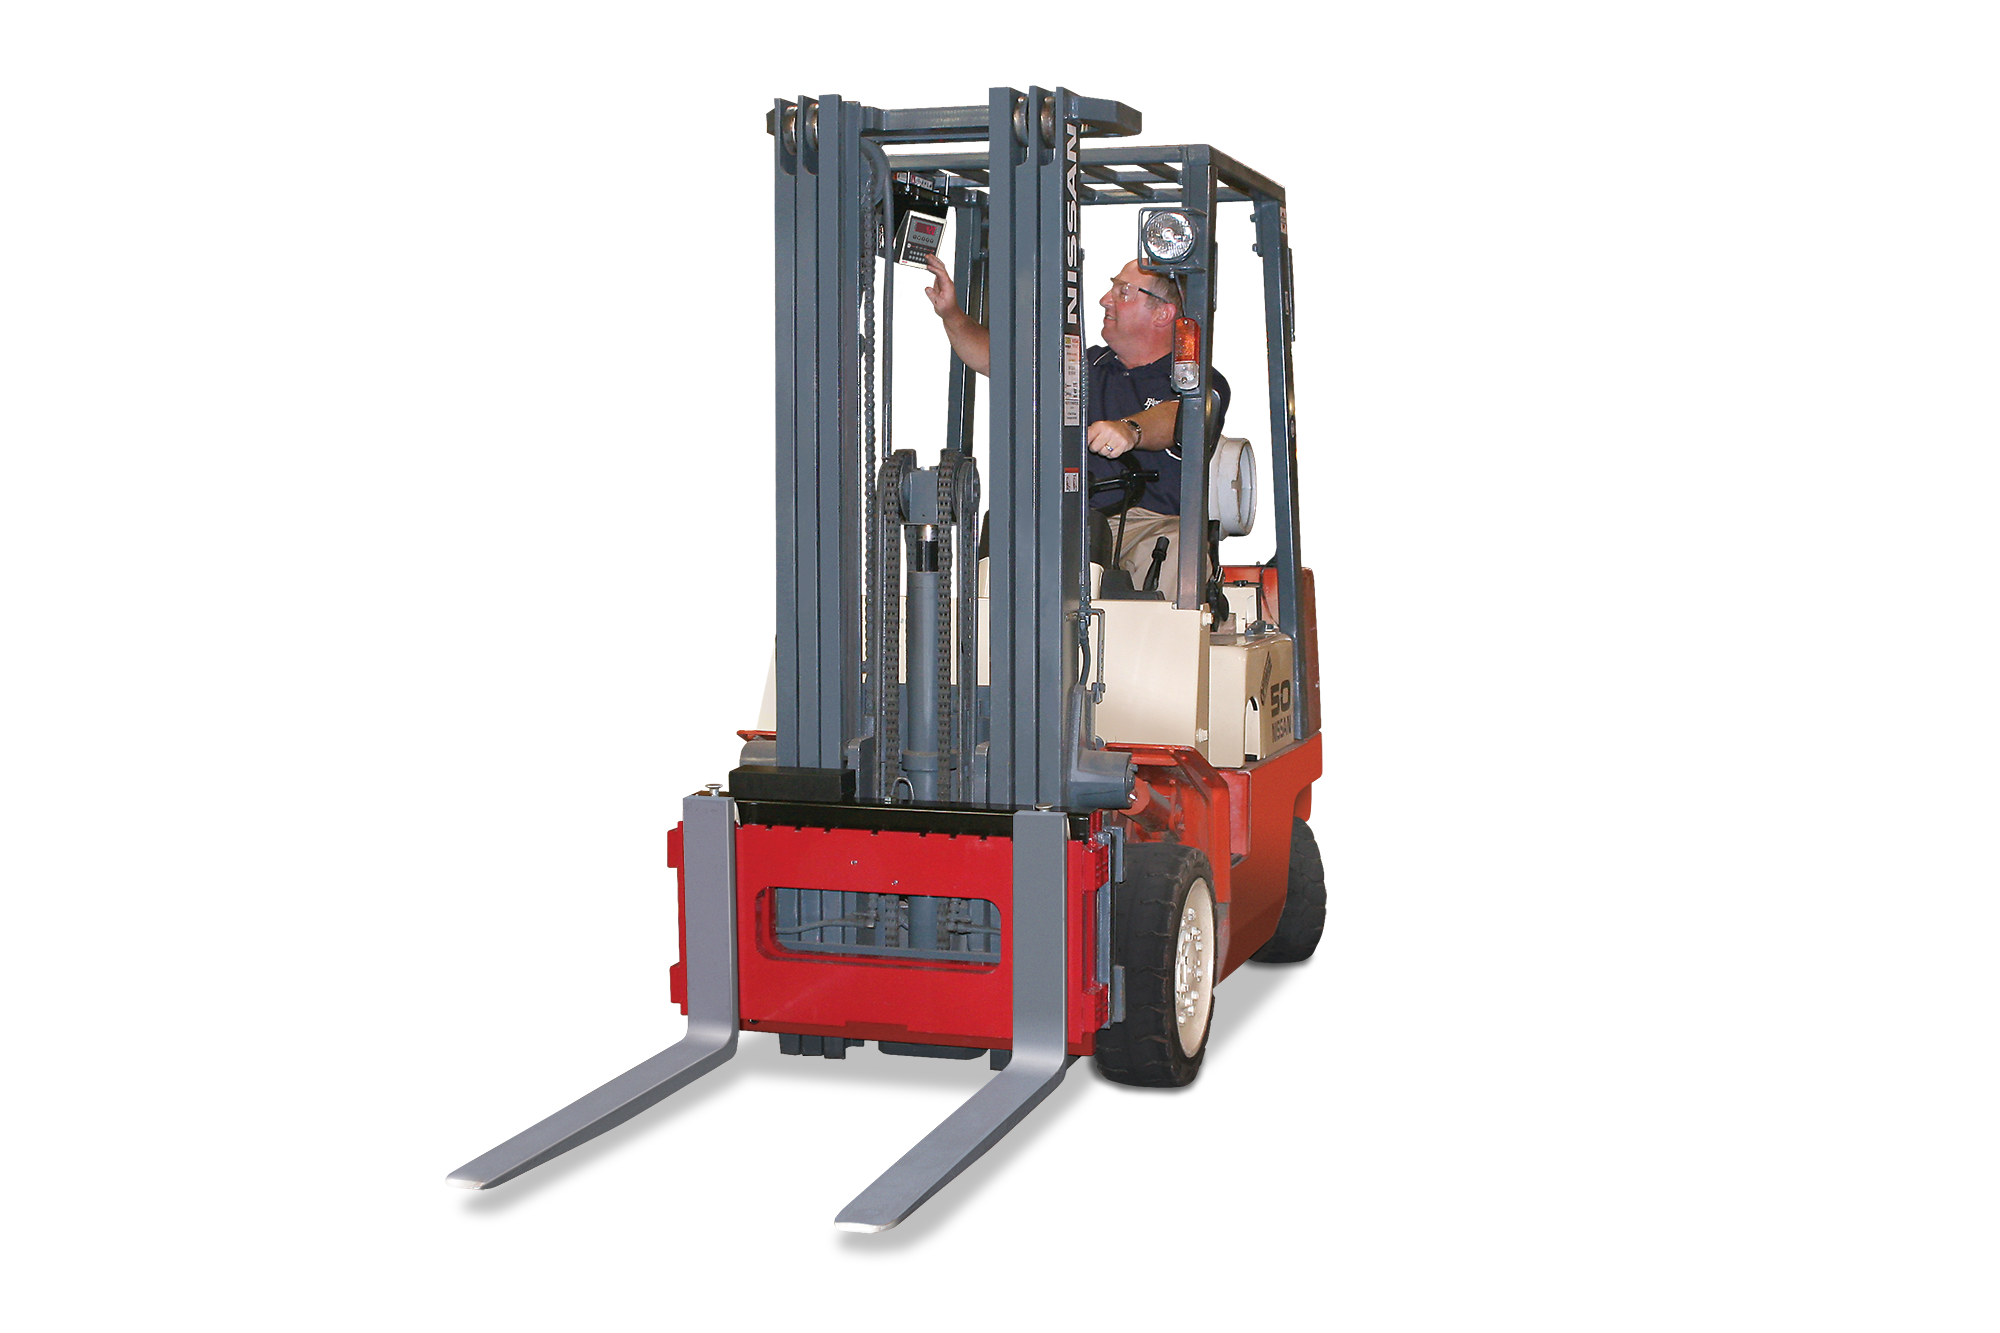 Forklift drawing training manual. Cls scale view hd